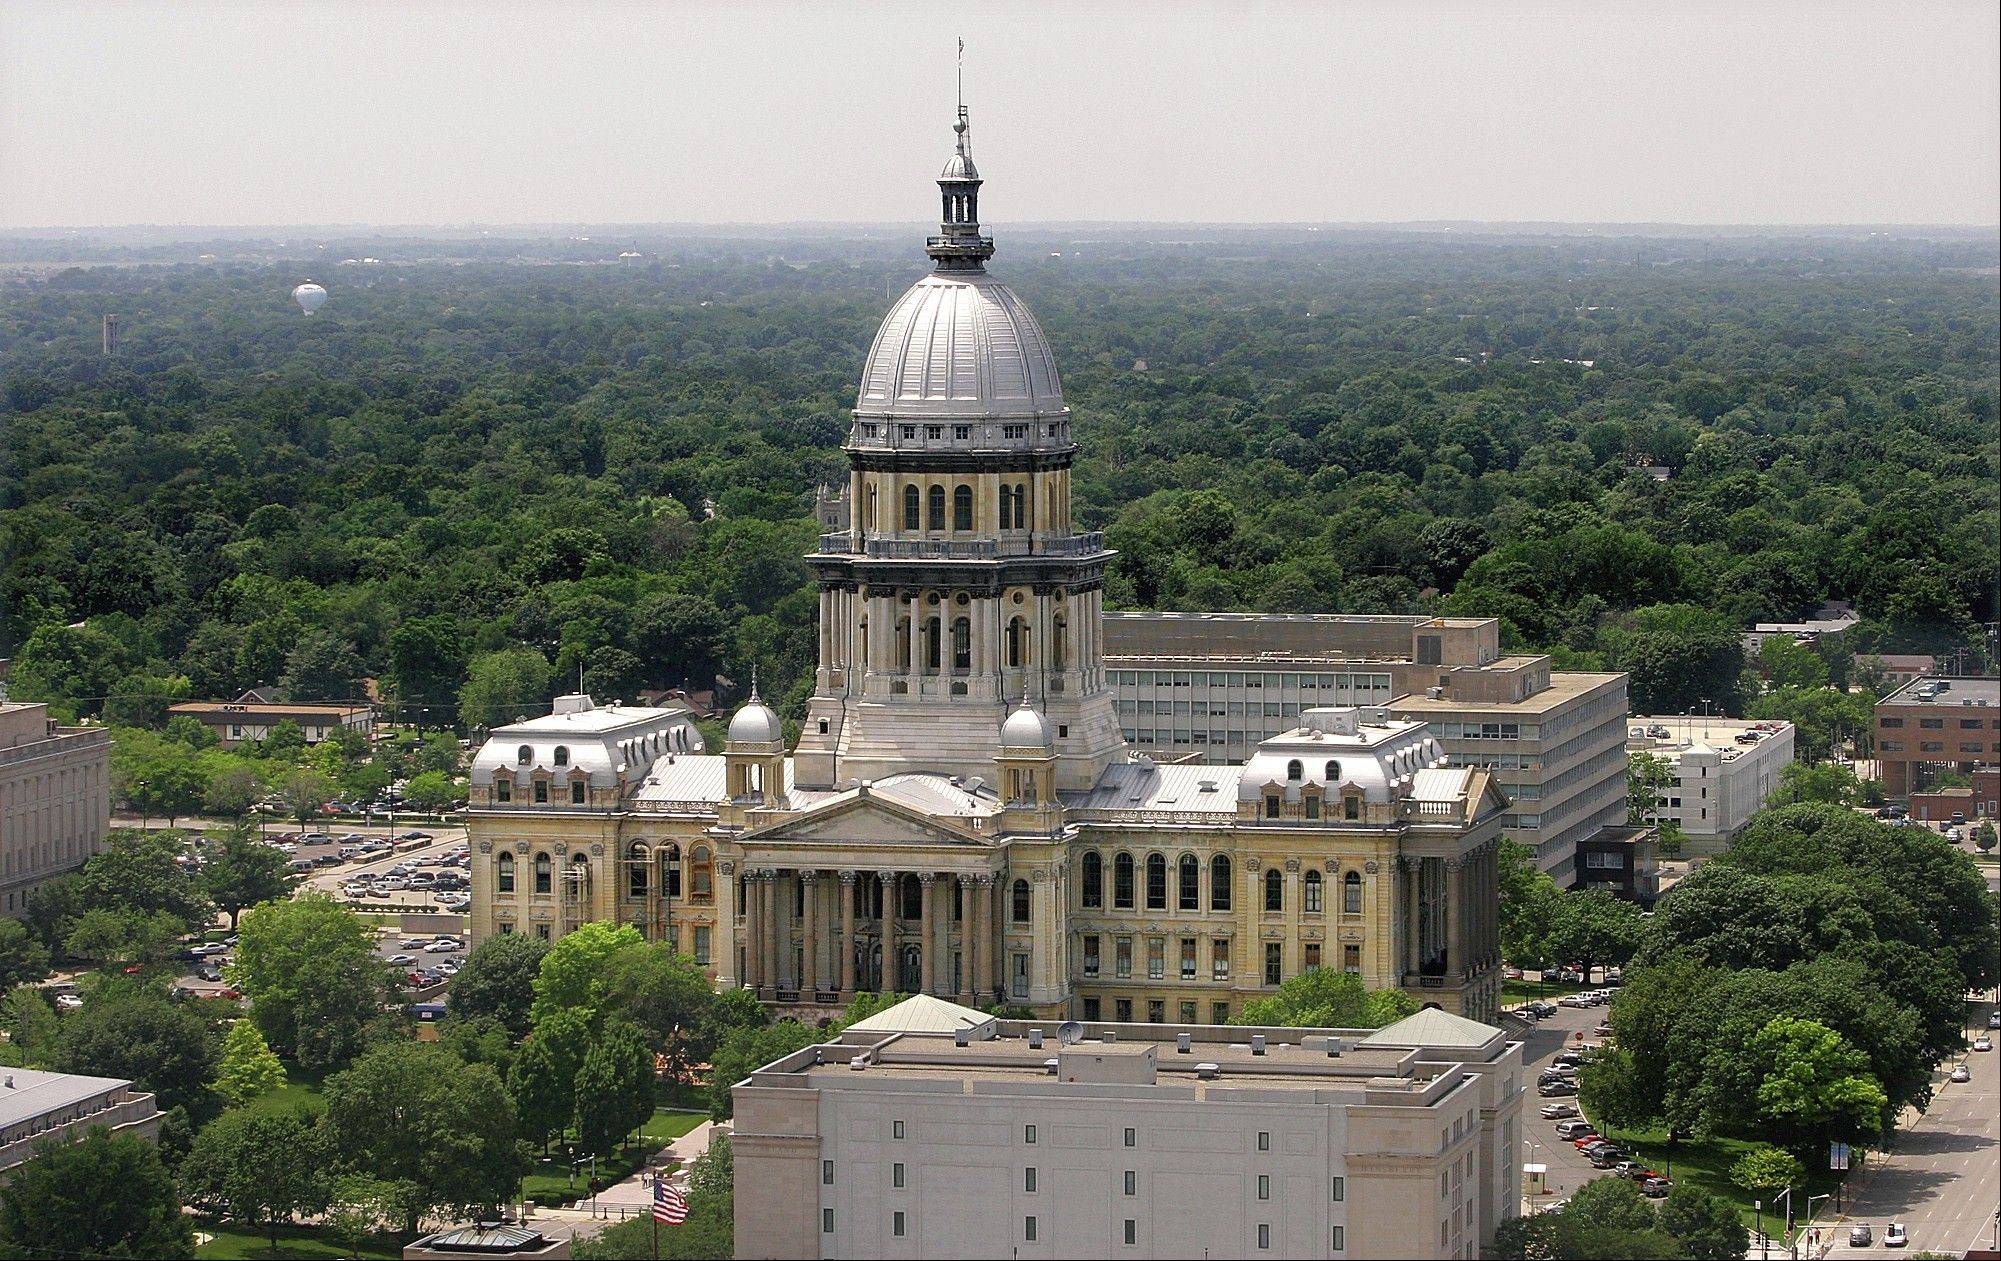 It cost Illinois taxpayers more than $1.7 million in 2010 to cover daily allowances and trips by state legislators to and from the Capitol building in Springfield.